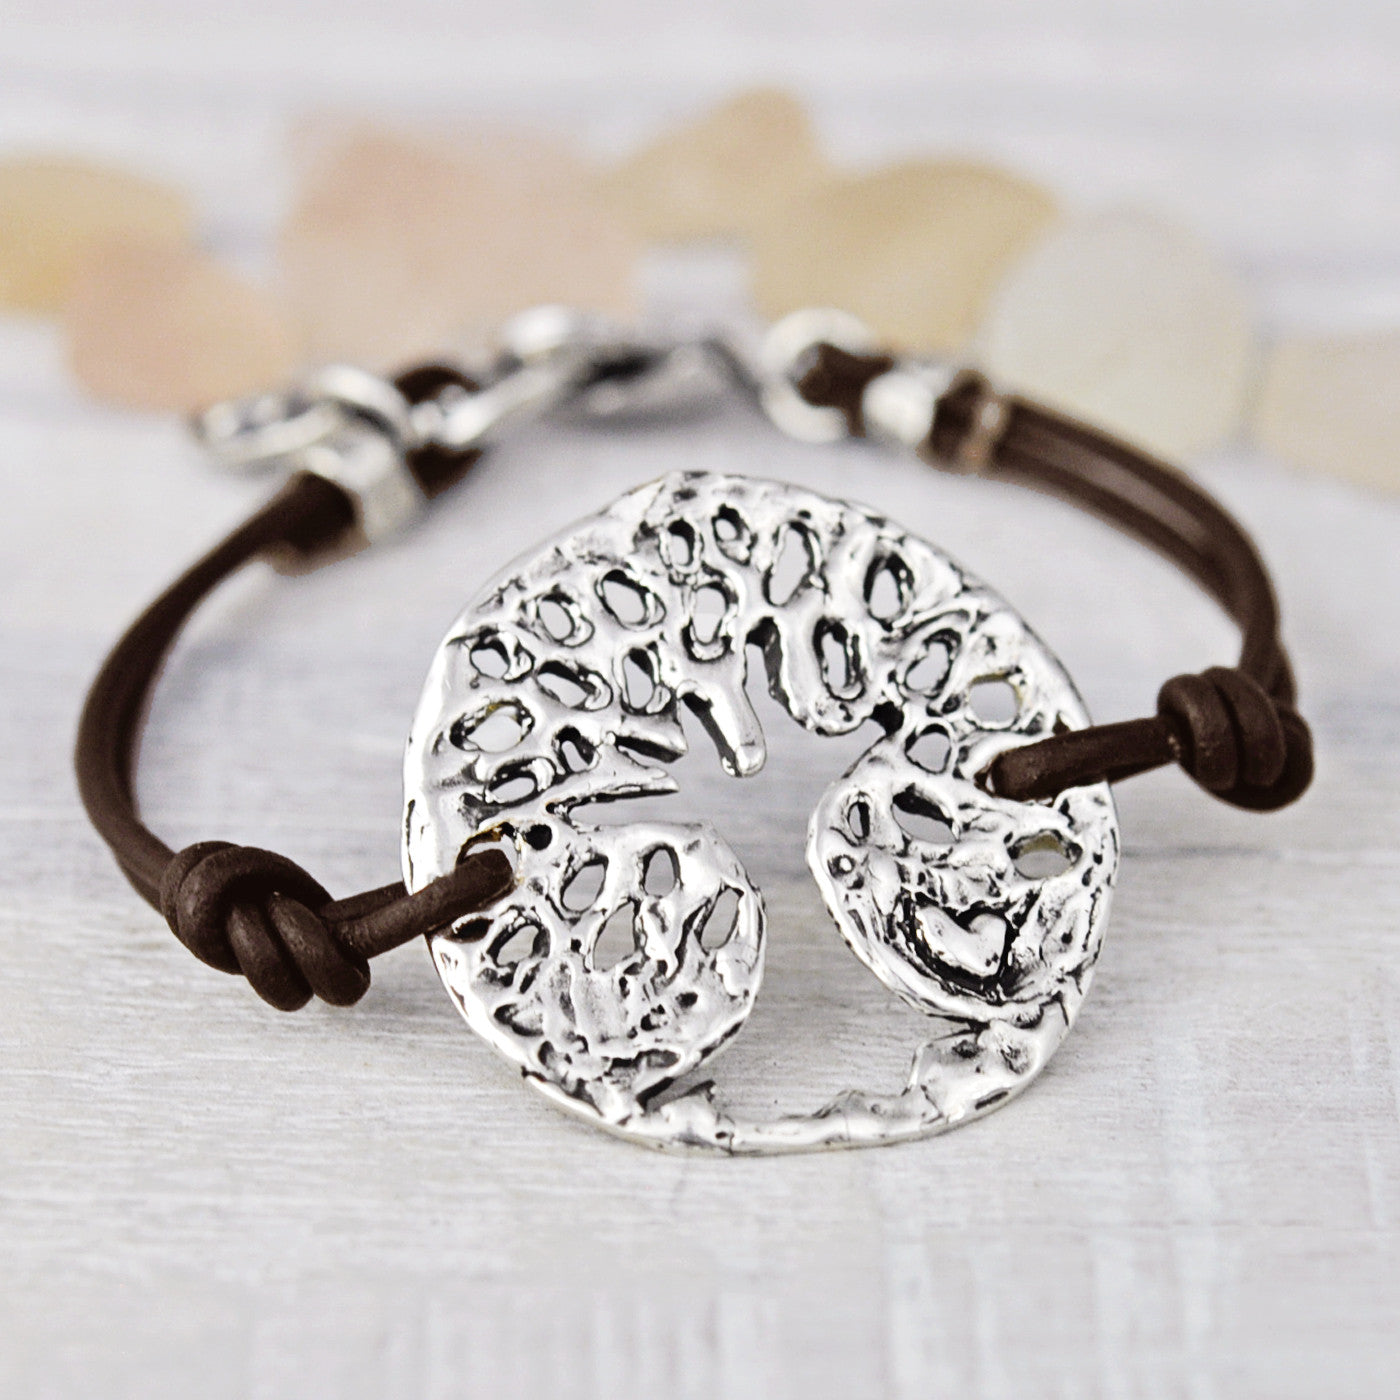 products strong soul bracelet magpie growing